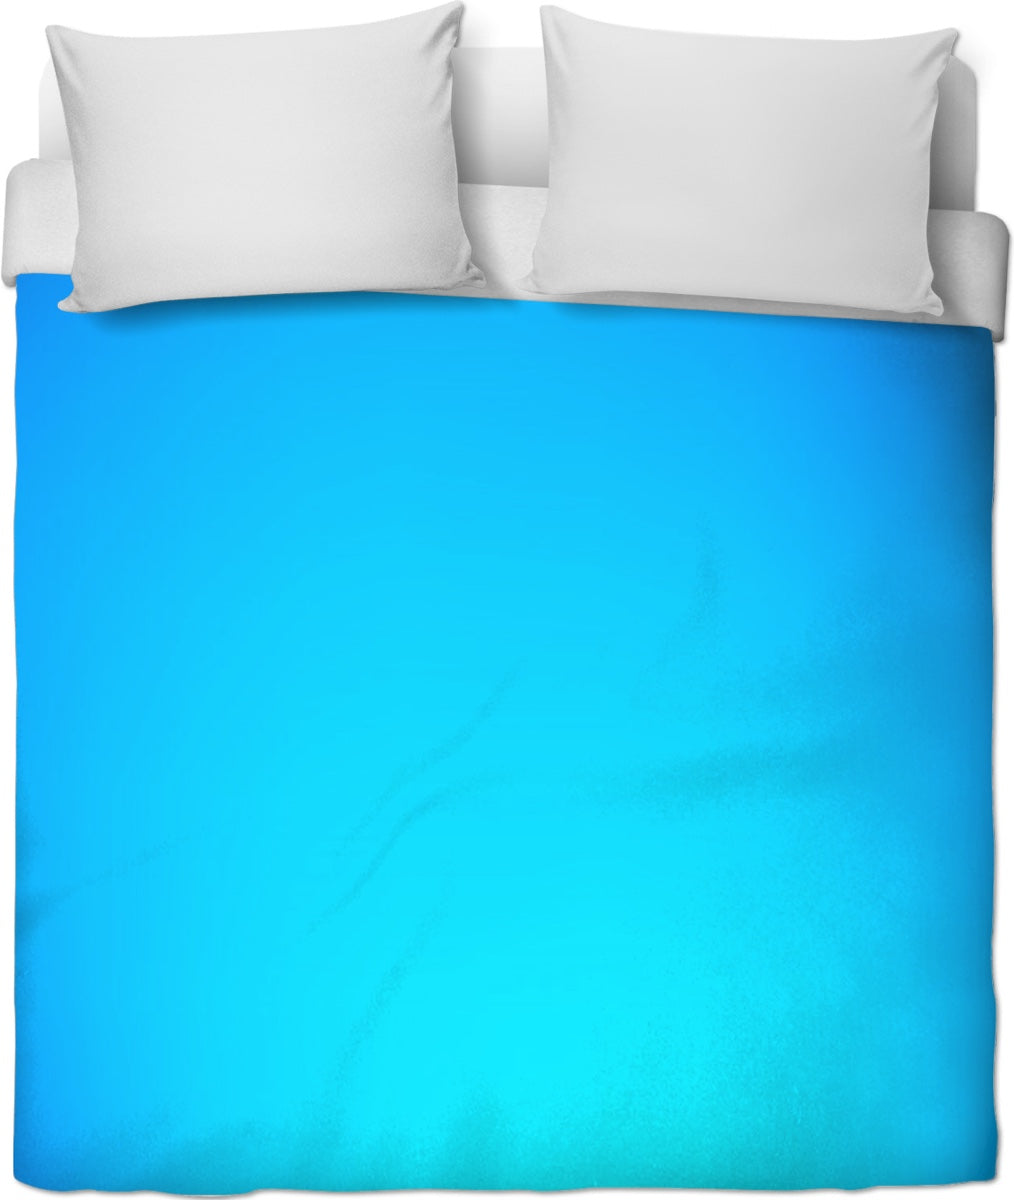 Favorite Color Duvet Cover